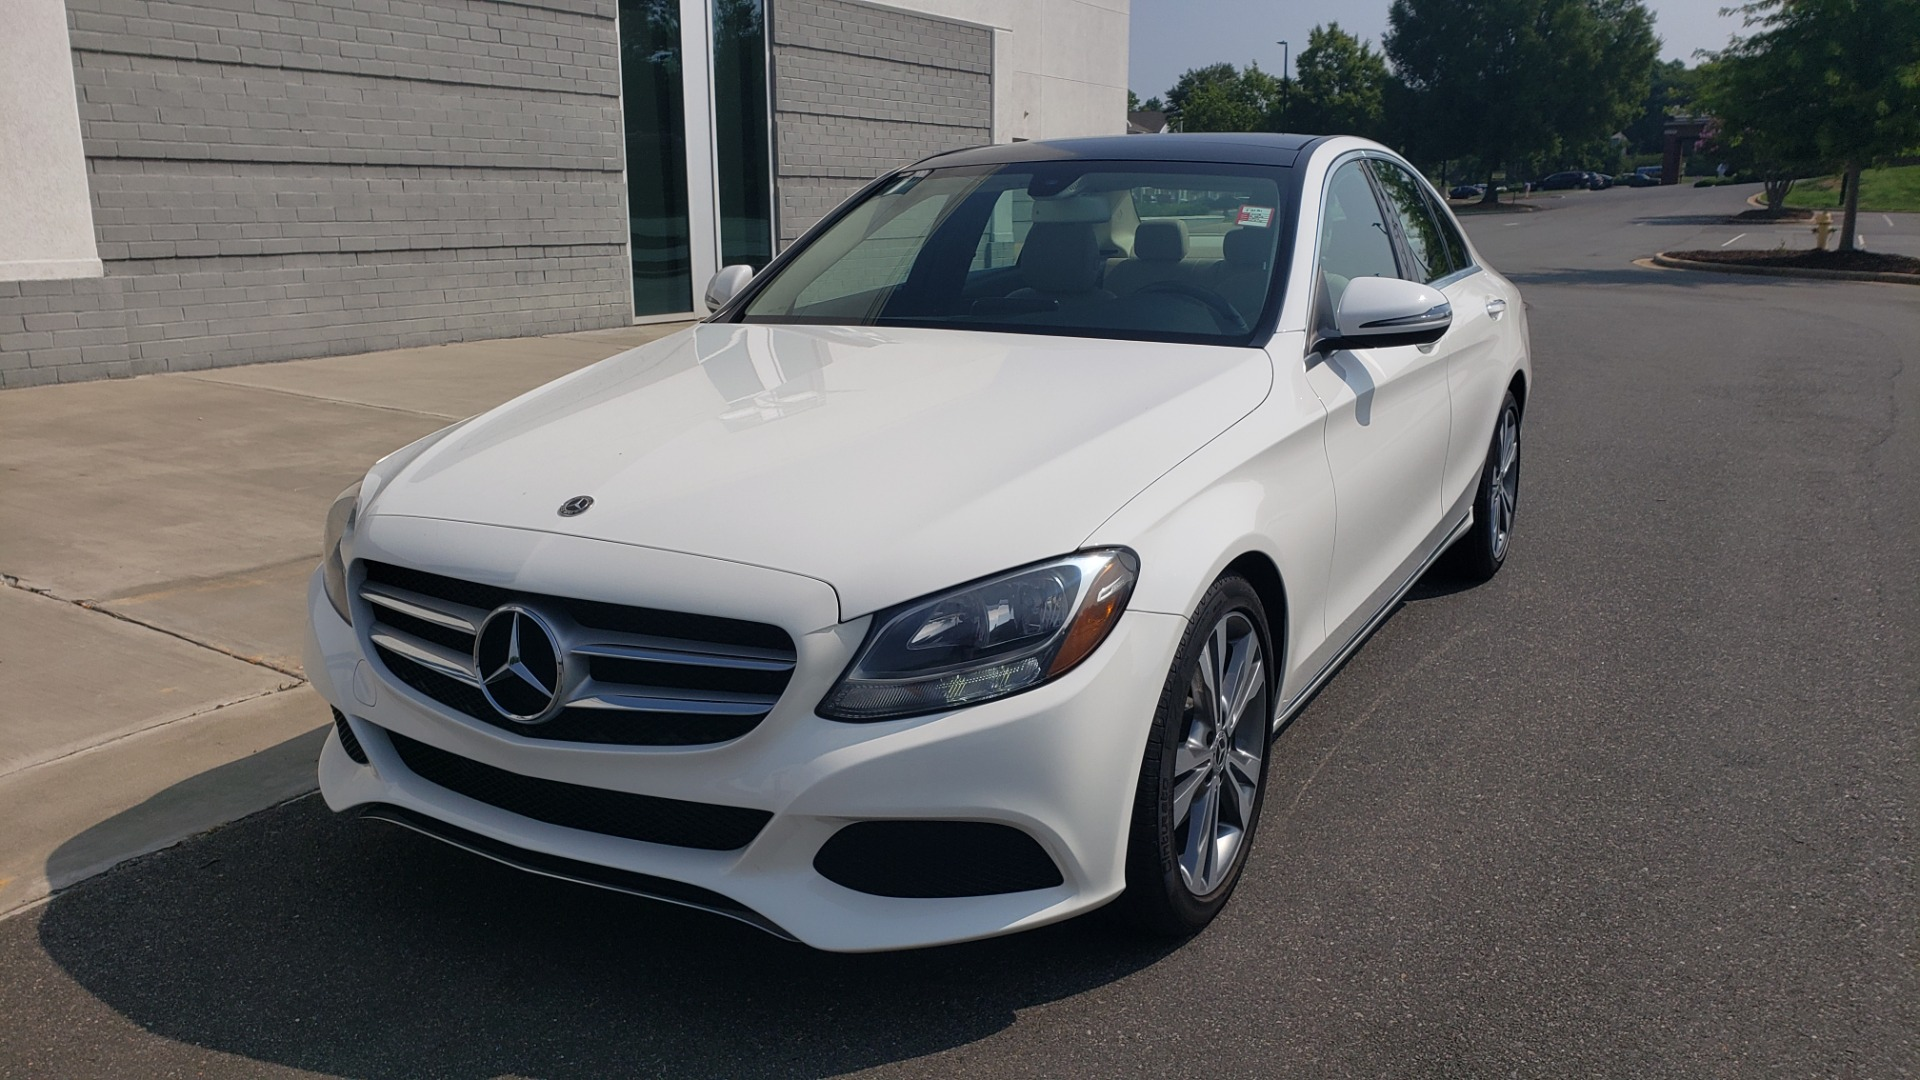 Used 2018 Mercedes-Benz C-CLASS C 300 PREMIUM / KEYLESS-GO / APPLE / PANO-ROOF / REARVIEW for sale $28,295 at Formula Imports in Charlotte NC 28227 3